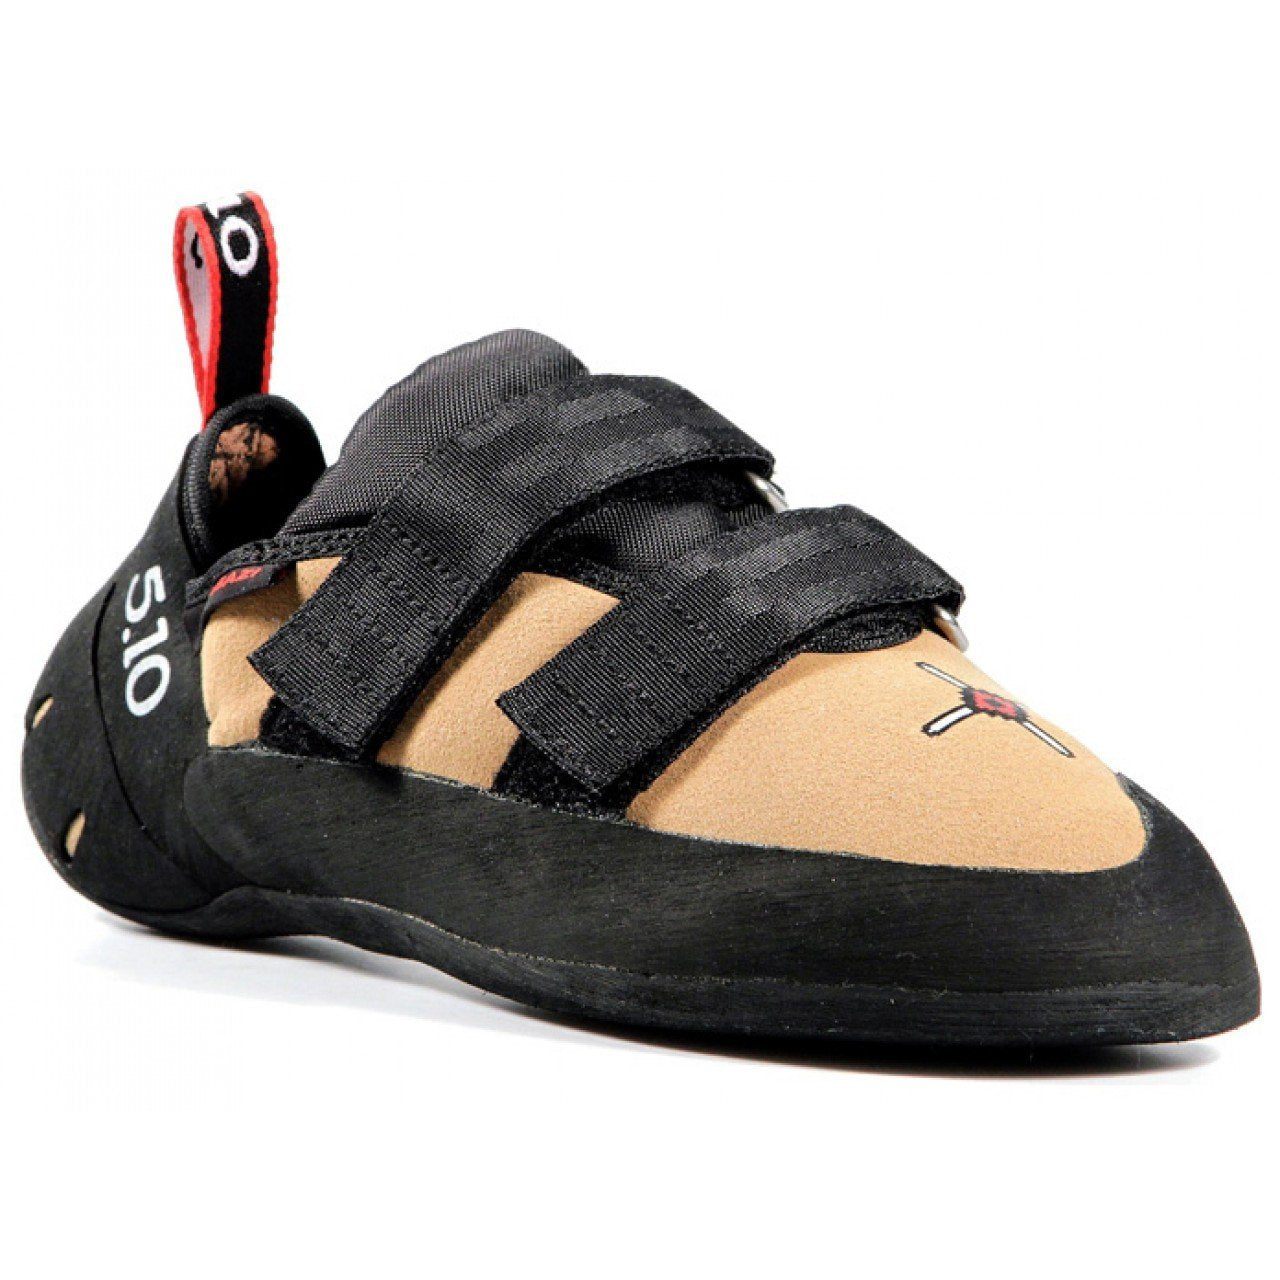 Five Ten Anasazi VCS climbing shoe, in black and tan colours